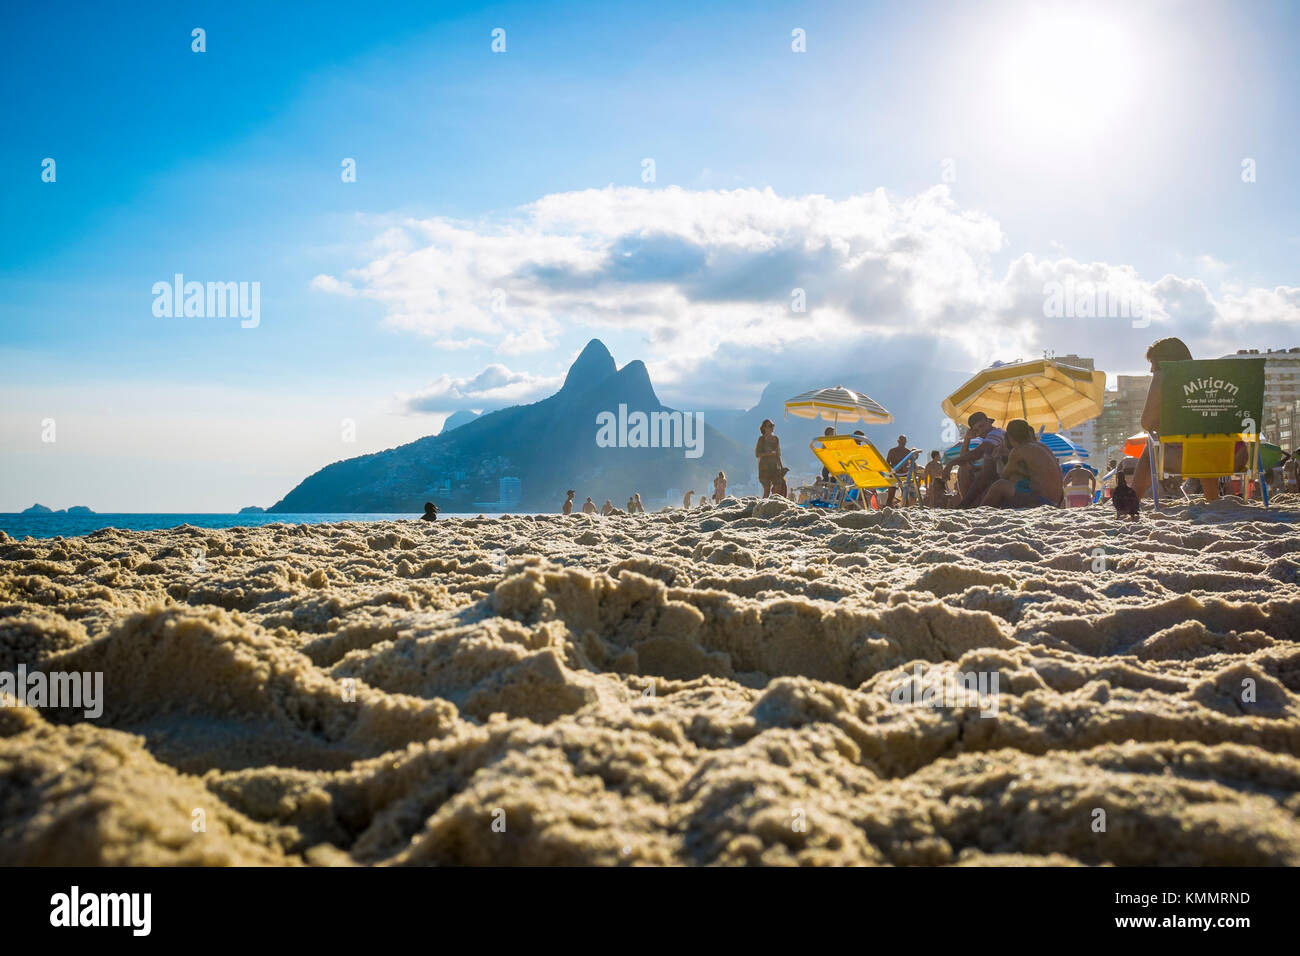 RIO DE JANEIRO - MARCH 06, 2016: People relax on Ipanema Beach against the iconic silhouette of Two Brothers Mountain - Stock Image